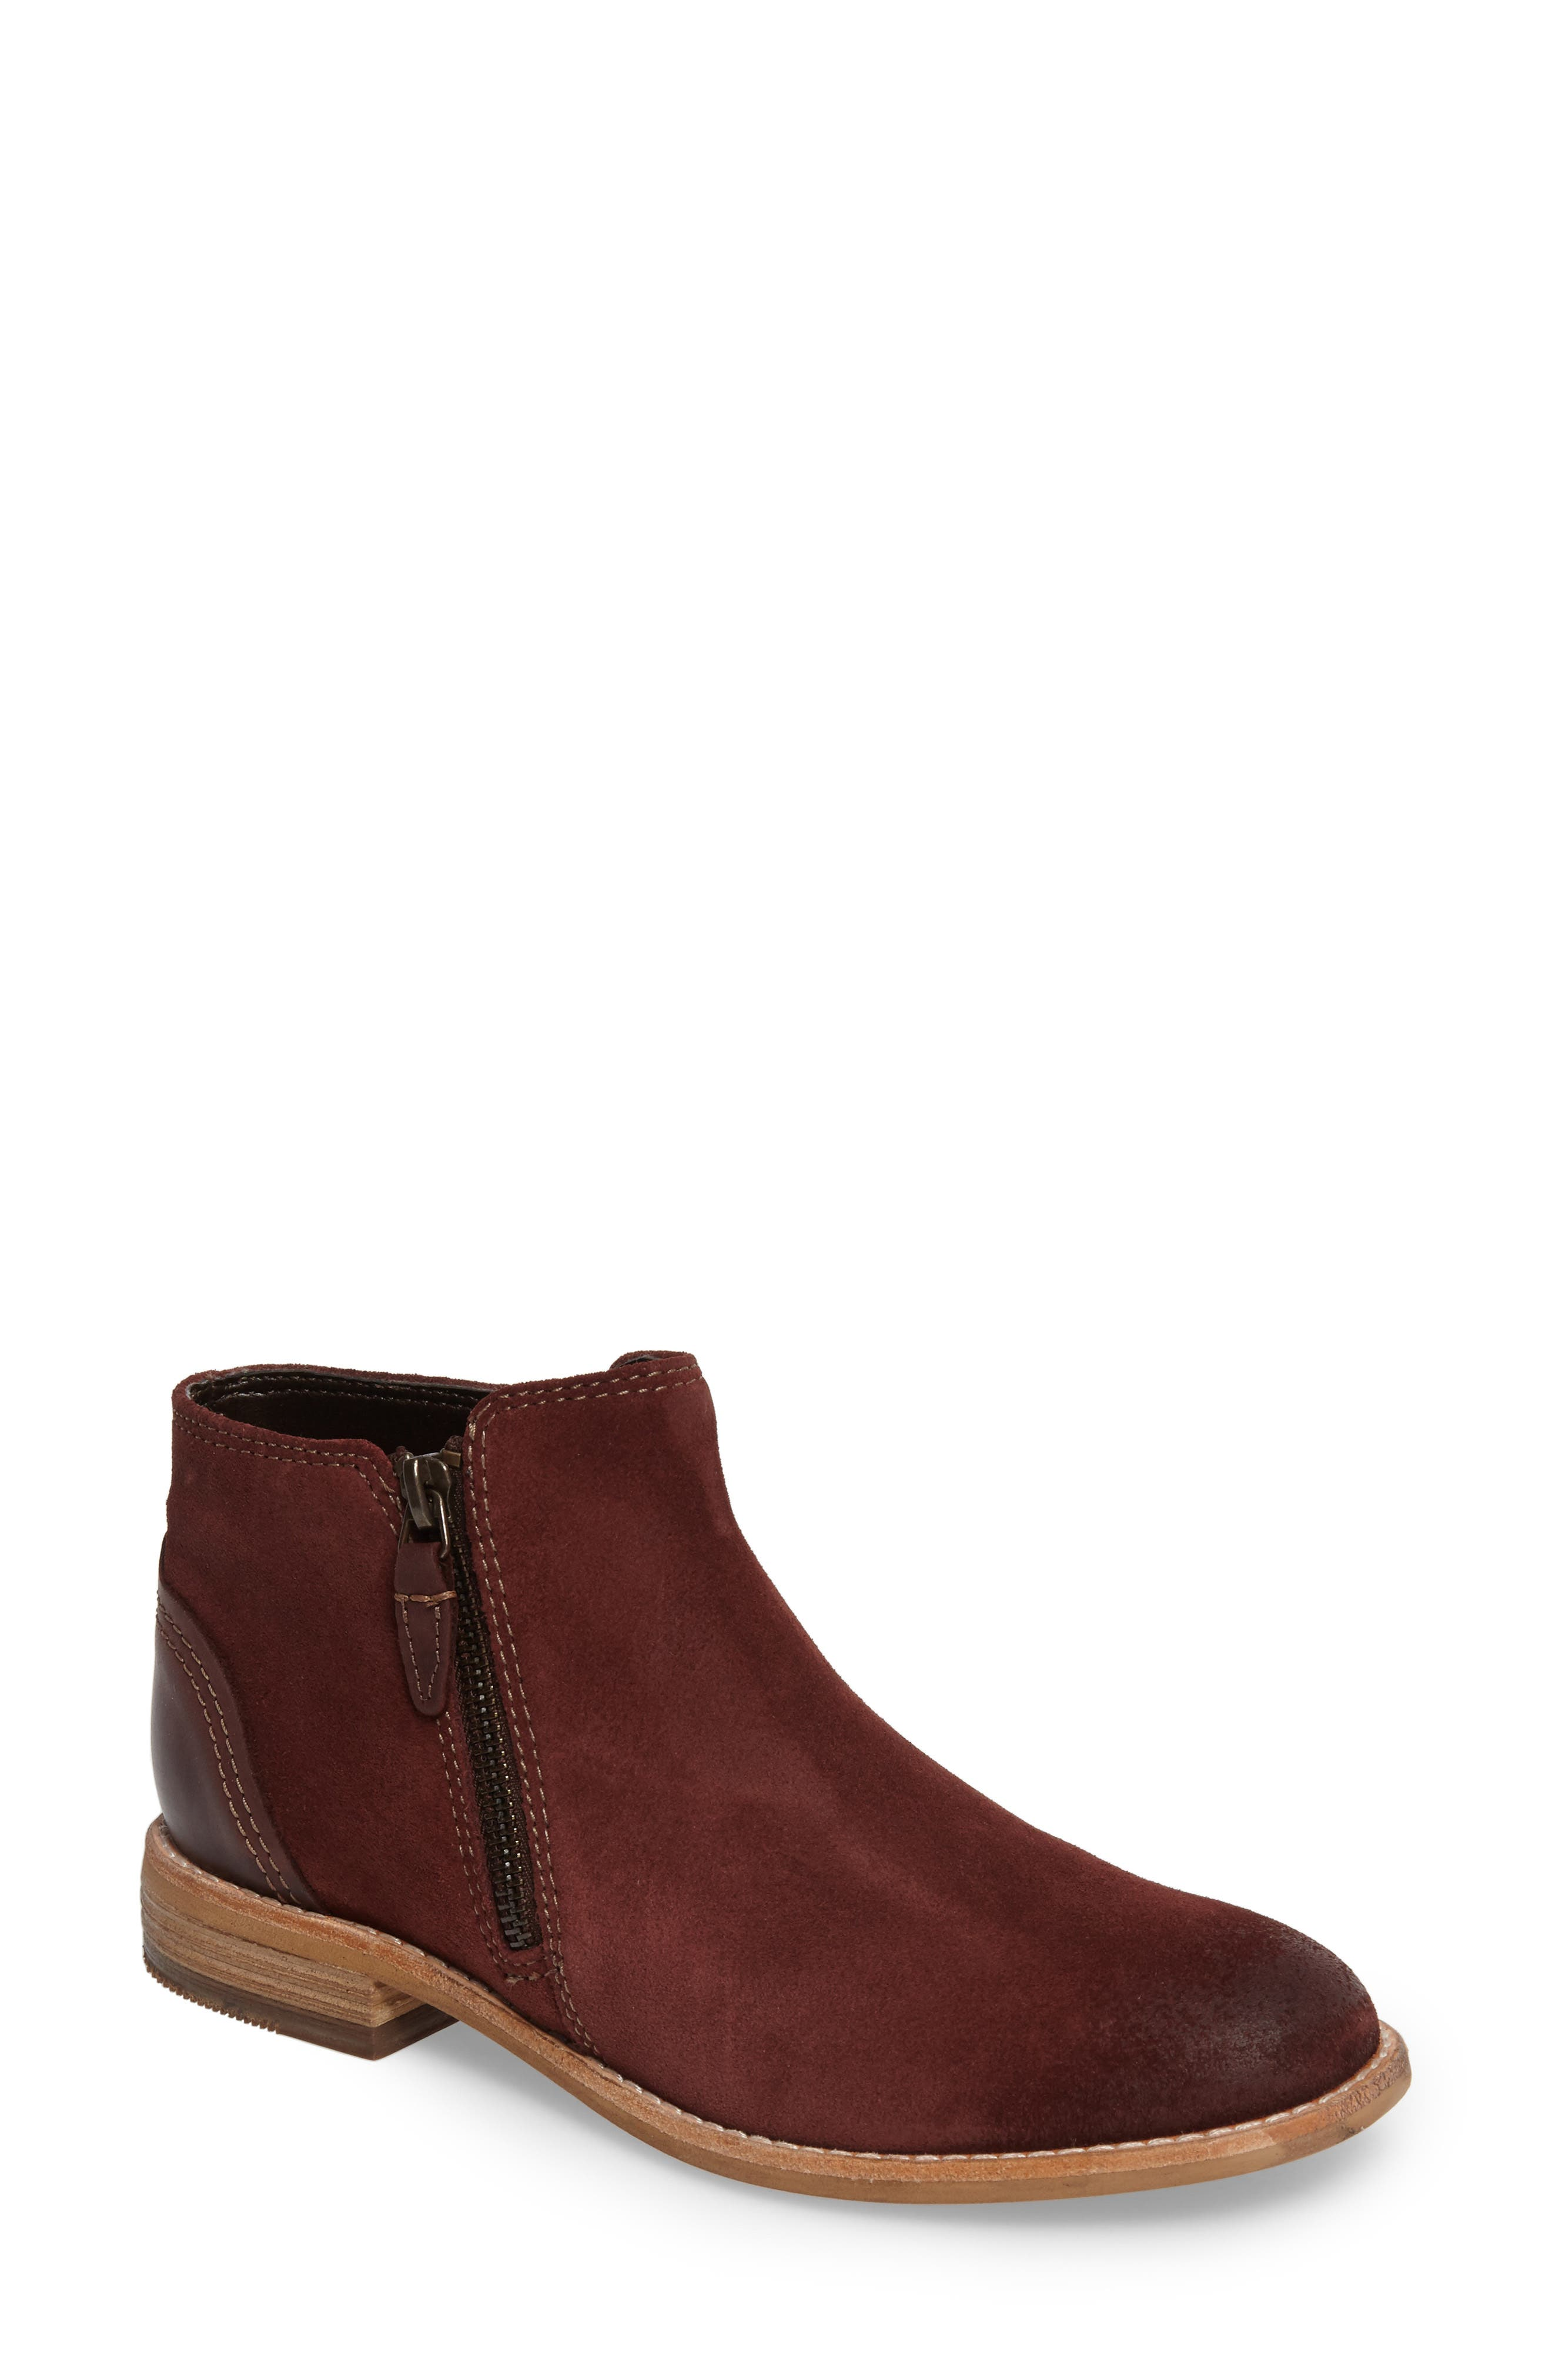 CLARKS<SUP>®</SUP>, Maypearl Juno Ankle Boot, Main thumbnail 1, color, MAHOGANY SUEDE